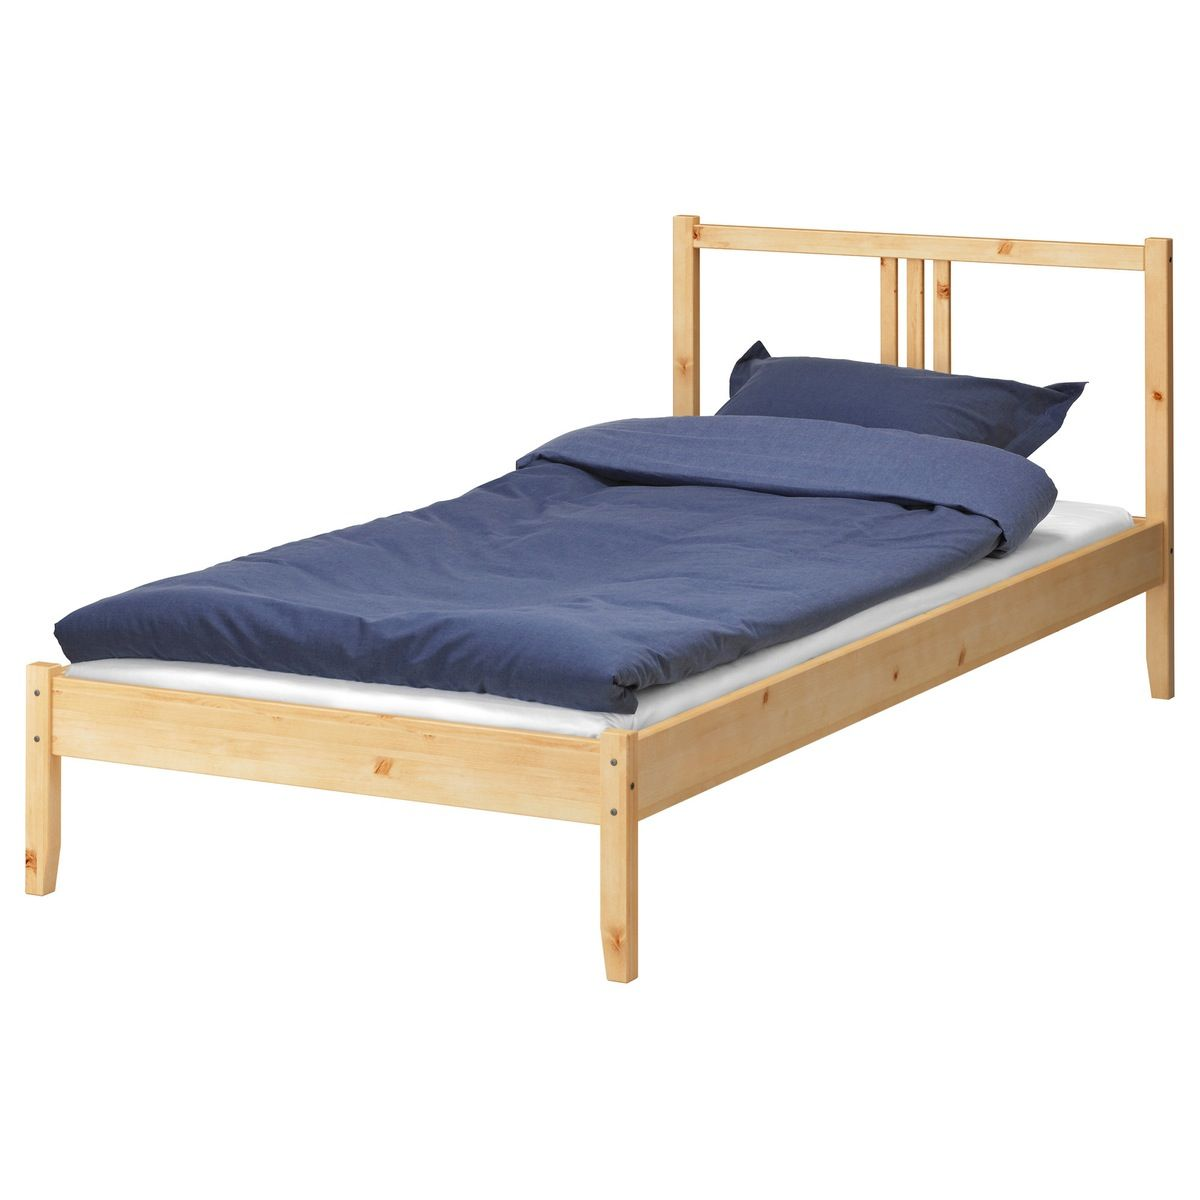 How To Seriously Upgrade A Basic 40 Ikea Fjellse Twin To A Beautiful Cane Bed Ikea Twin Bed Ikea Bed Frames Single Bed Frame Ikea